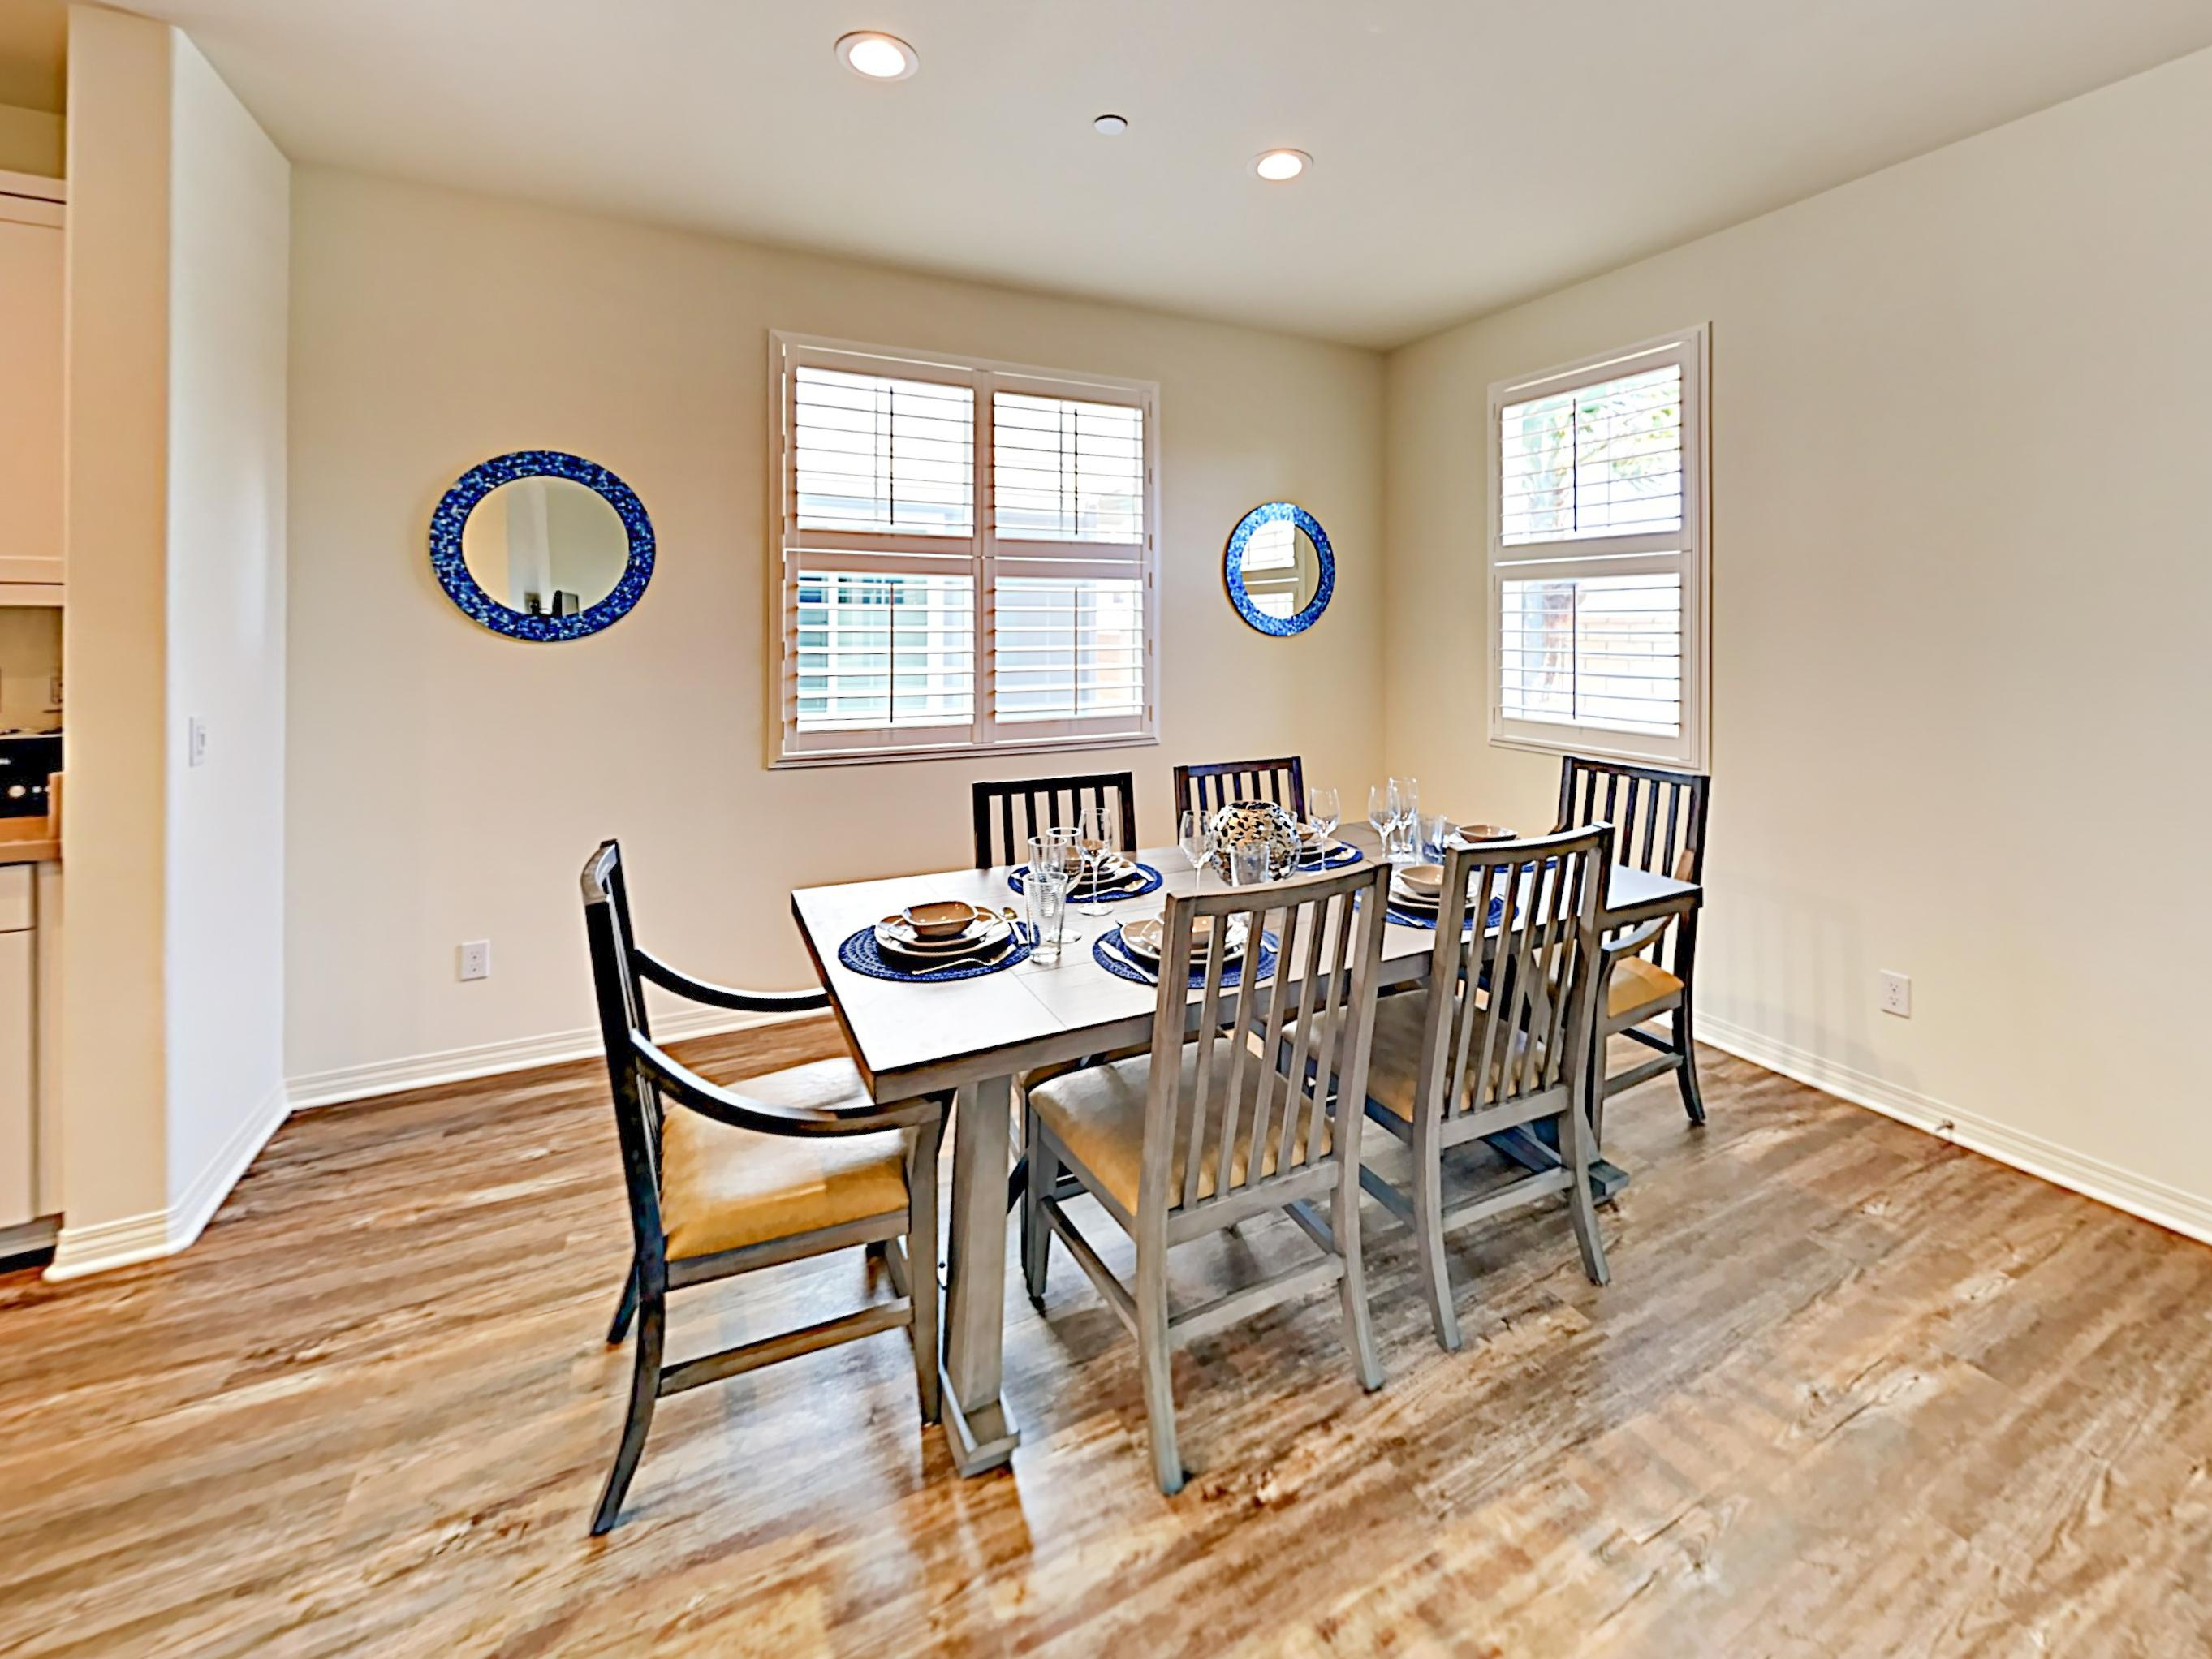 A wooden dining table offers comfortable seating for 6.